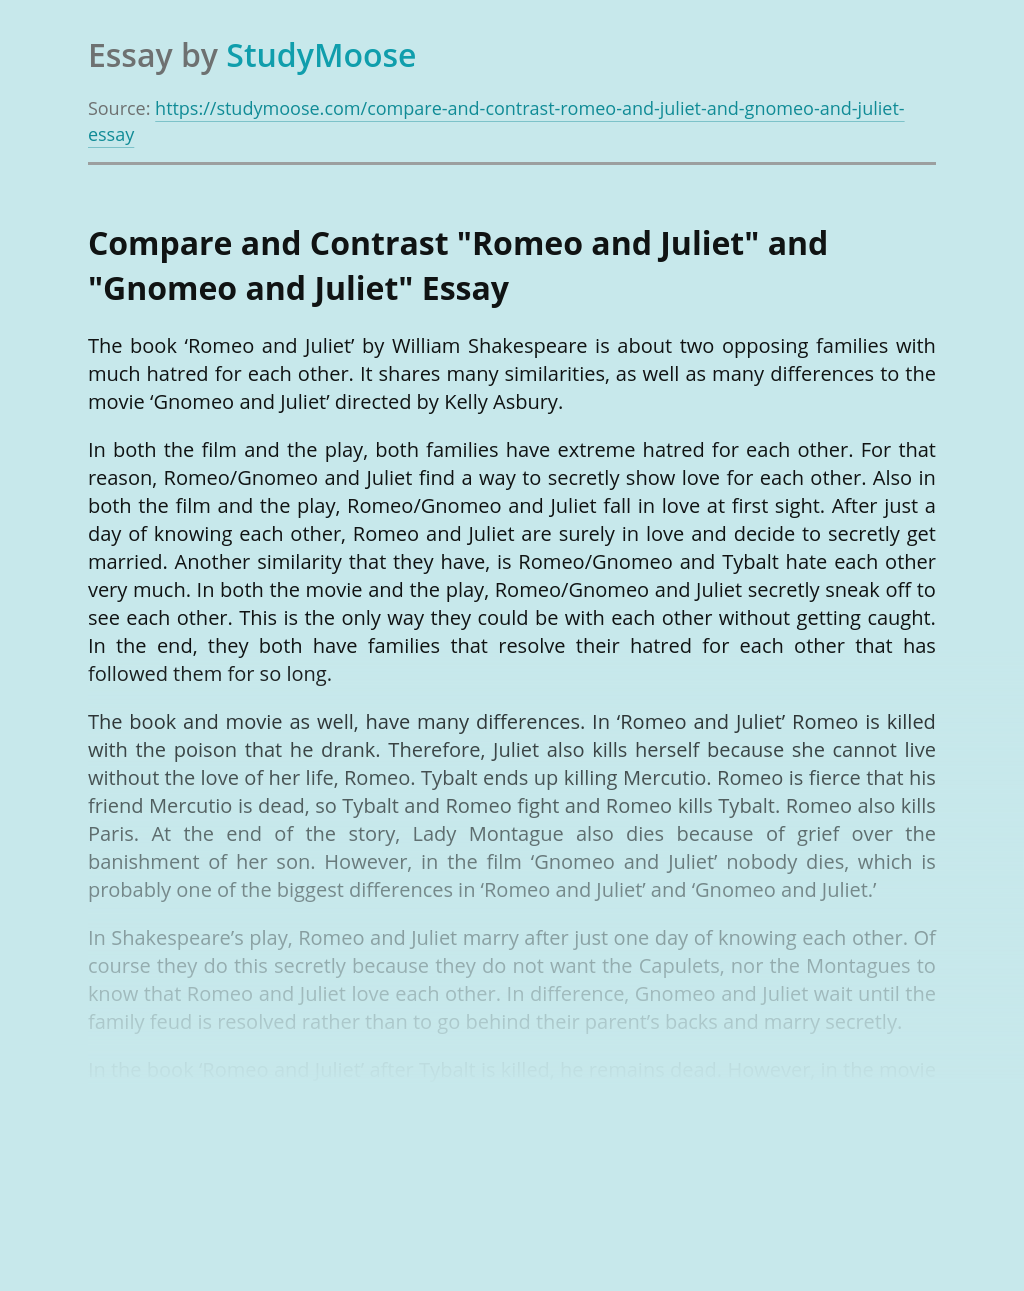 """Compare and Contrast """"Romeo and Juliet"""" and """"Gnomeo and Juliet"""""""